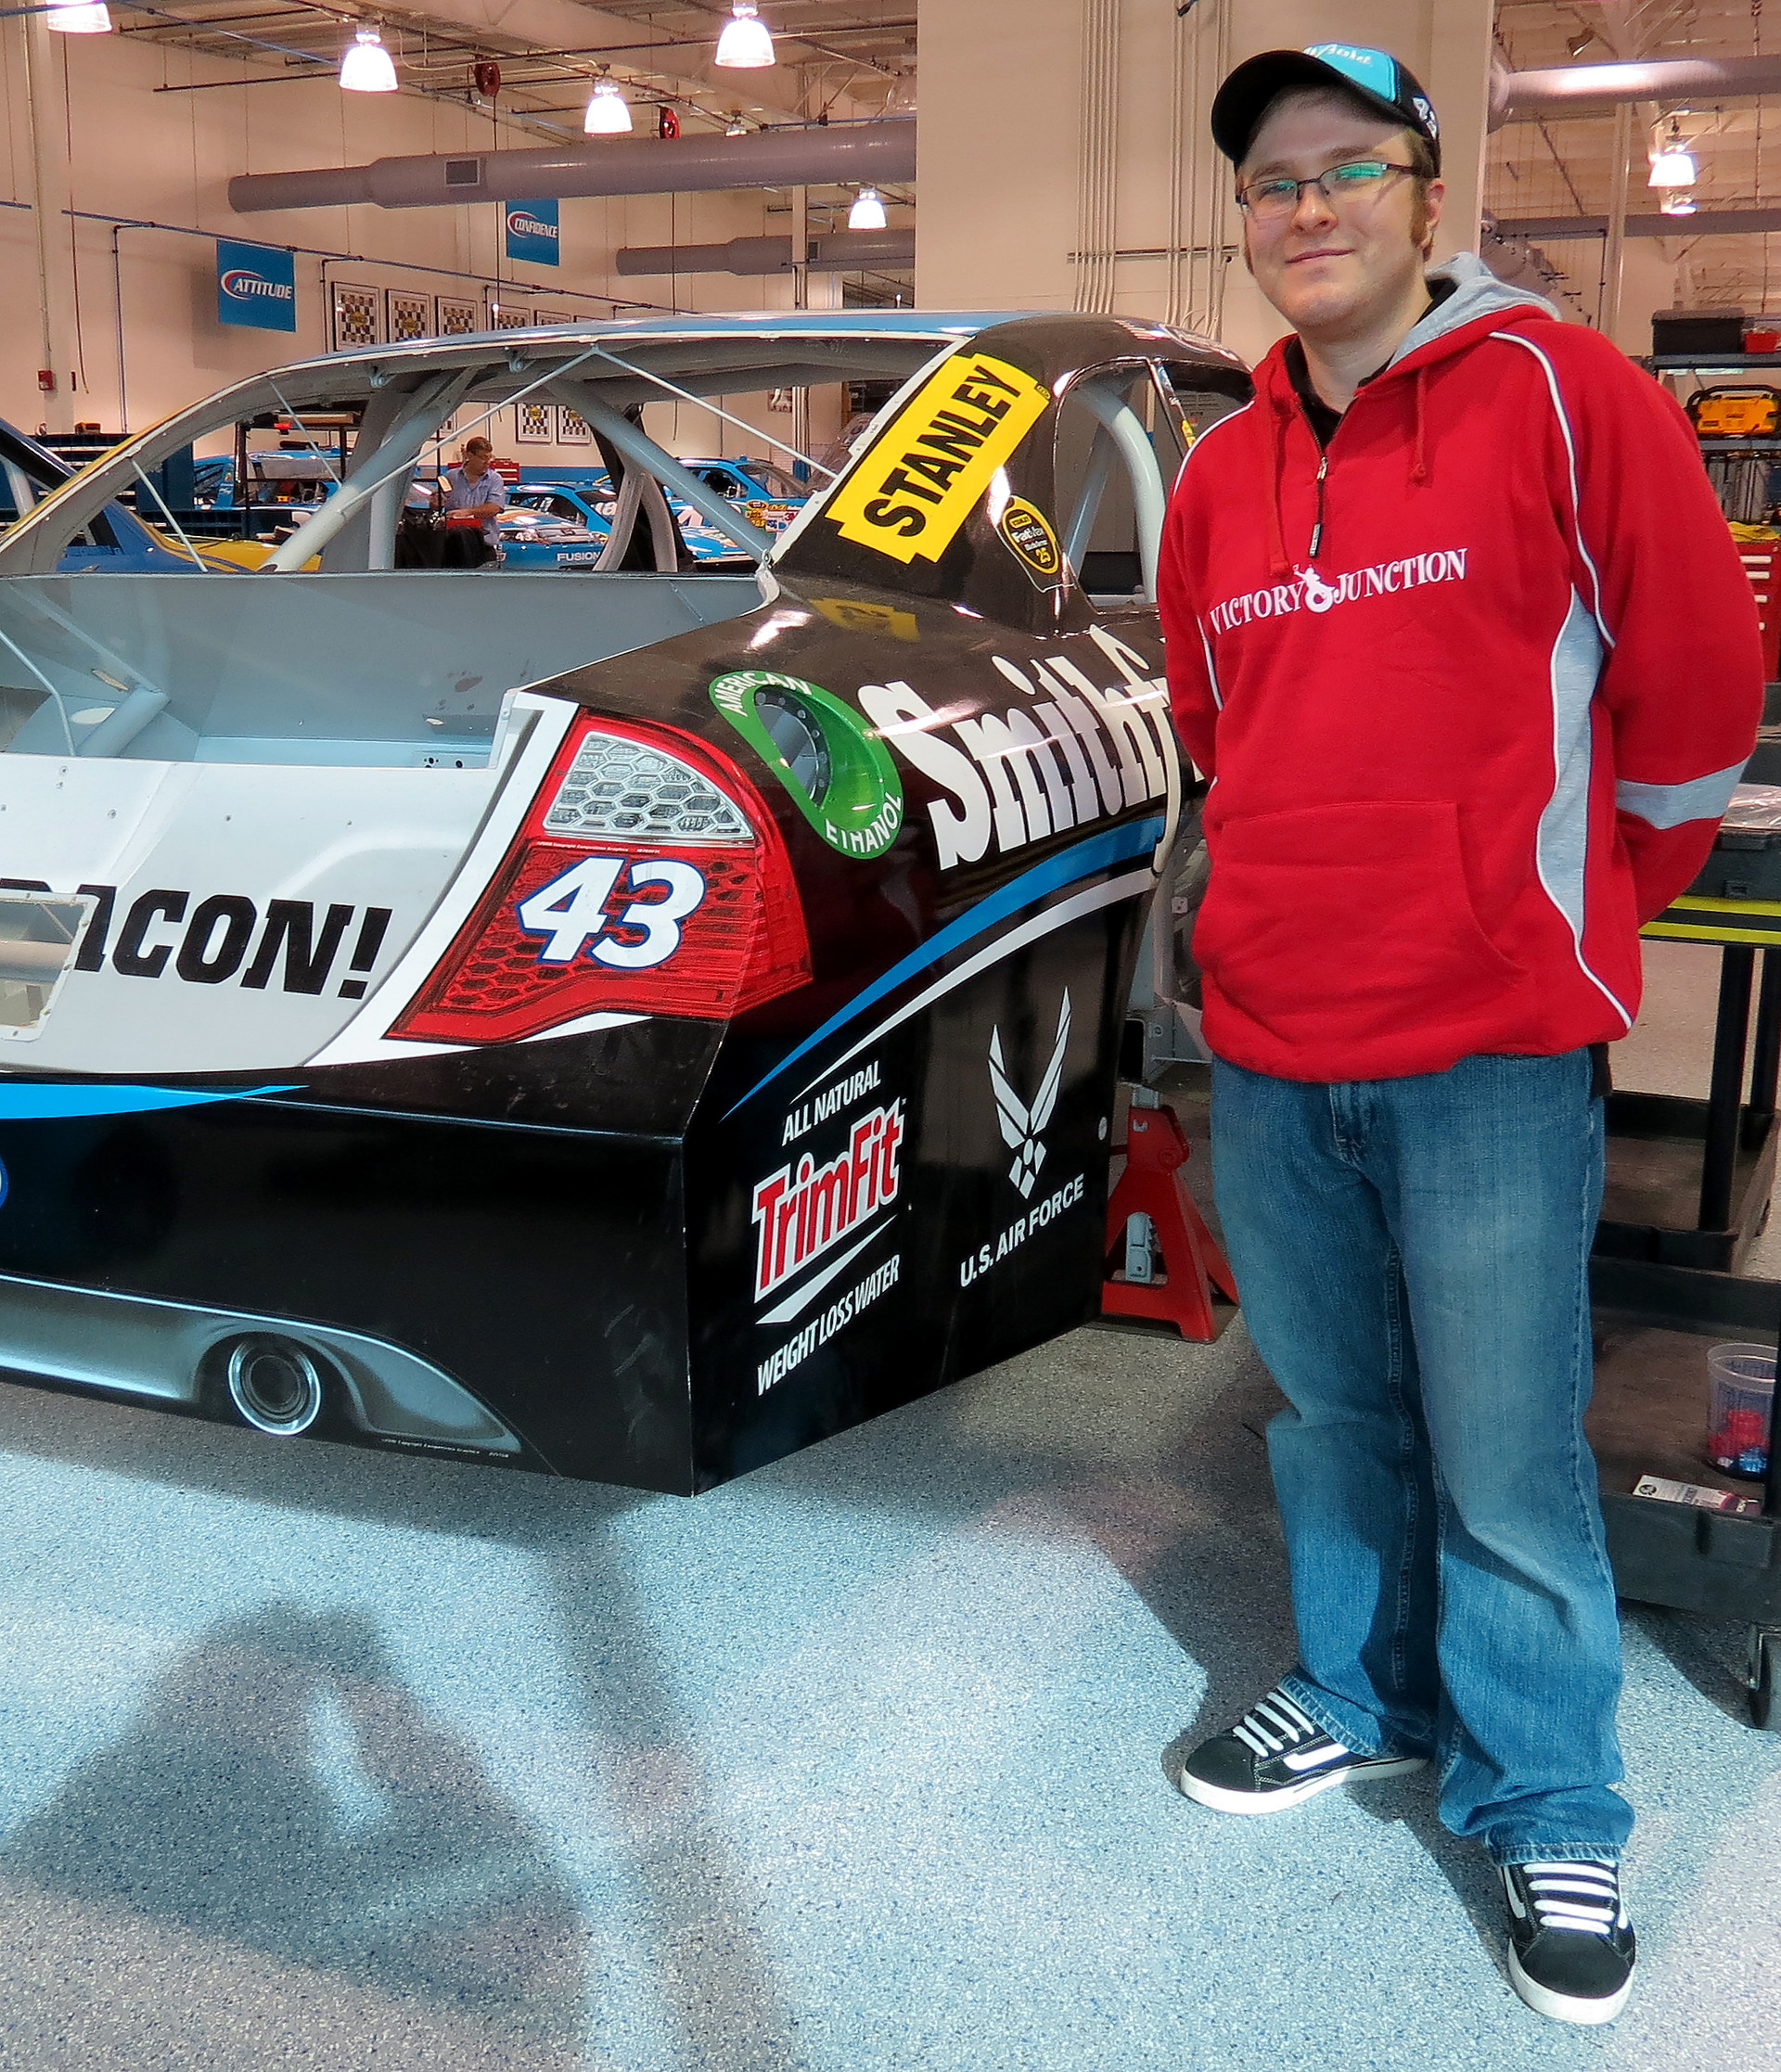 Standing with the previously raced Watkins Glen car as it sits in the Richard Petty Motorsports race shop